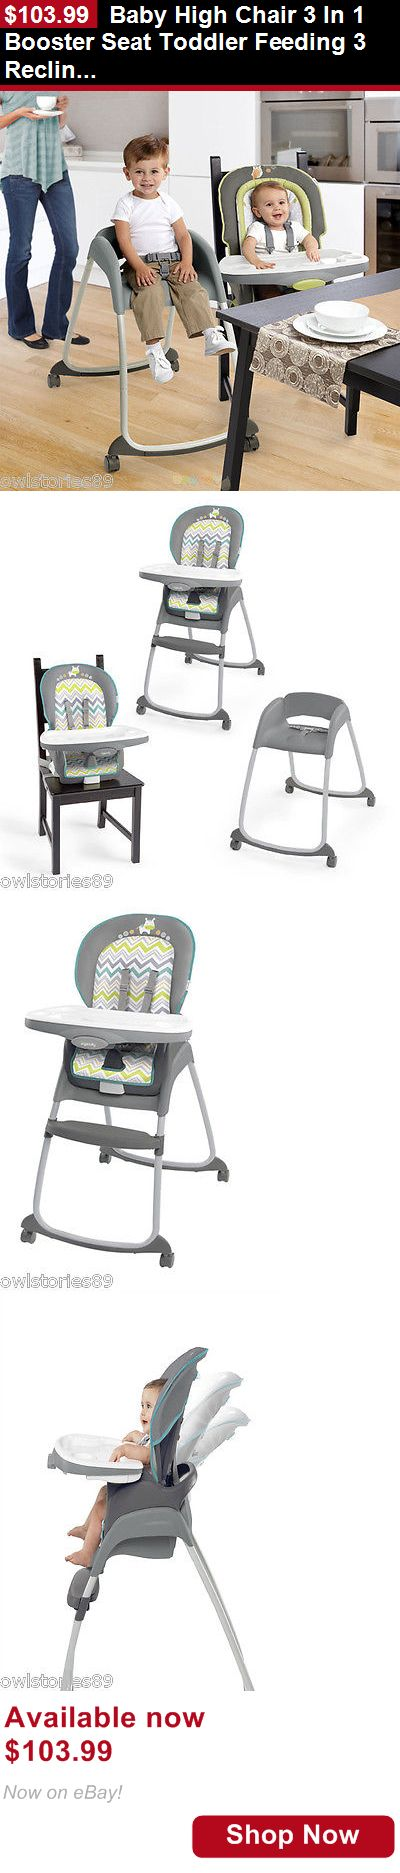 Baby High Chairs: Baby High Chair 3 In 1 Booster Seat Toddler Feeding 3 Recline Positions Kid Safe BUY IT NOW ONLY: $103.99